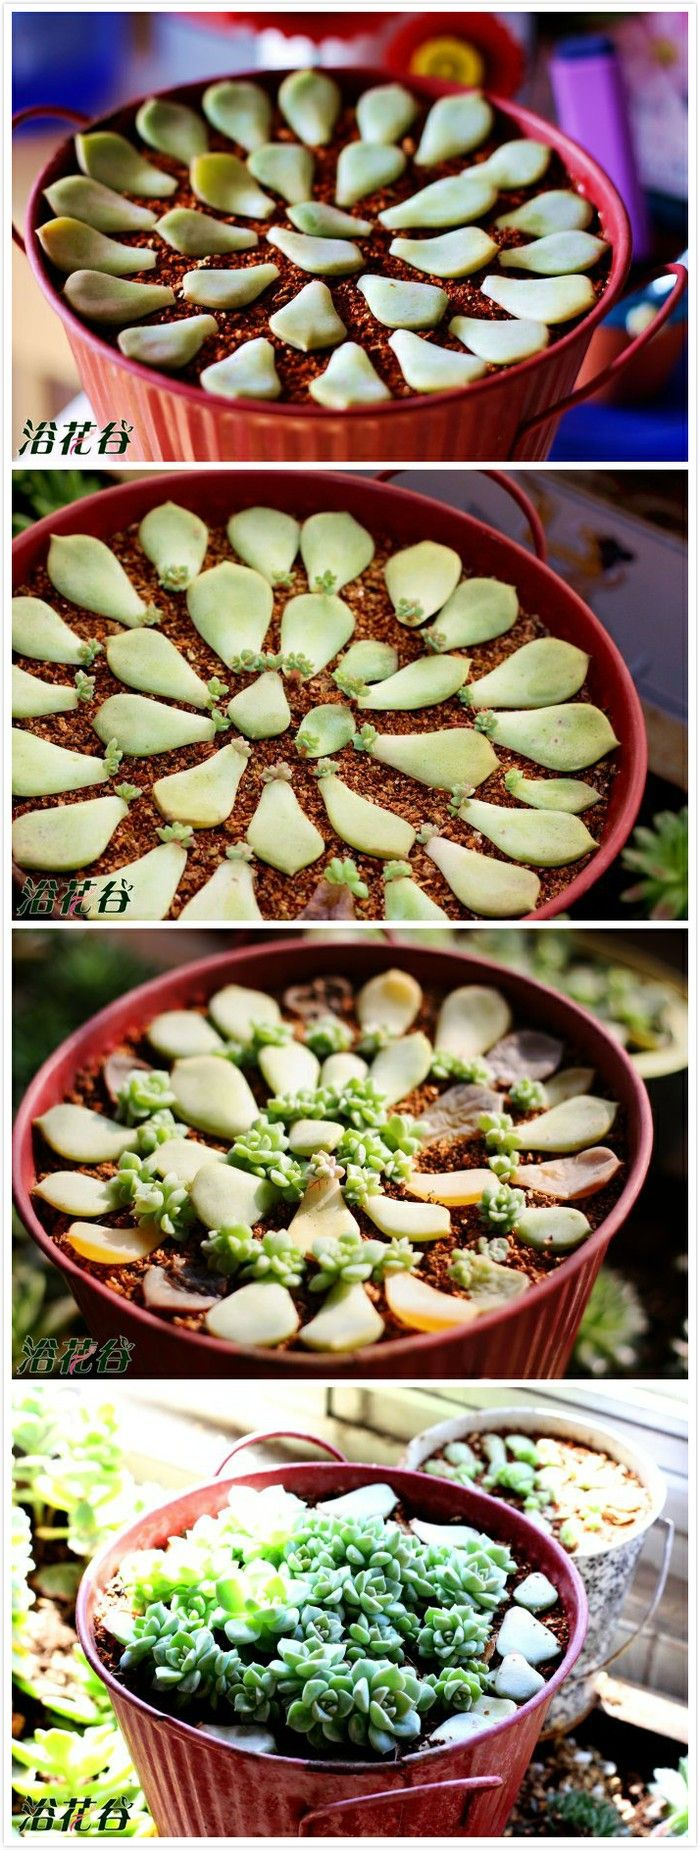 Ever wondered how to propagate succulents? Just lay the leaves on top of soil and new plants will grow.